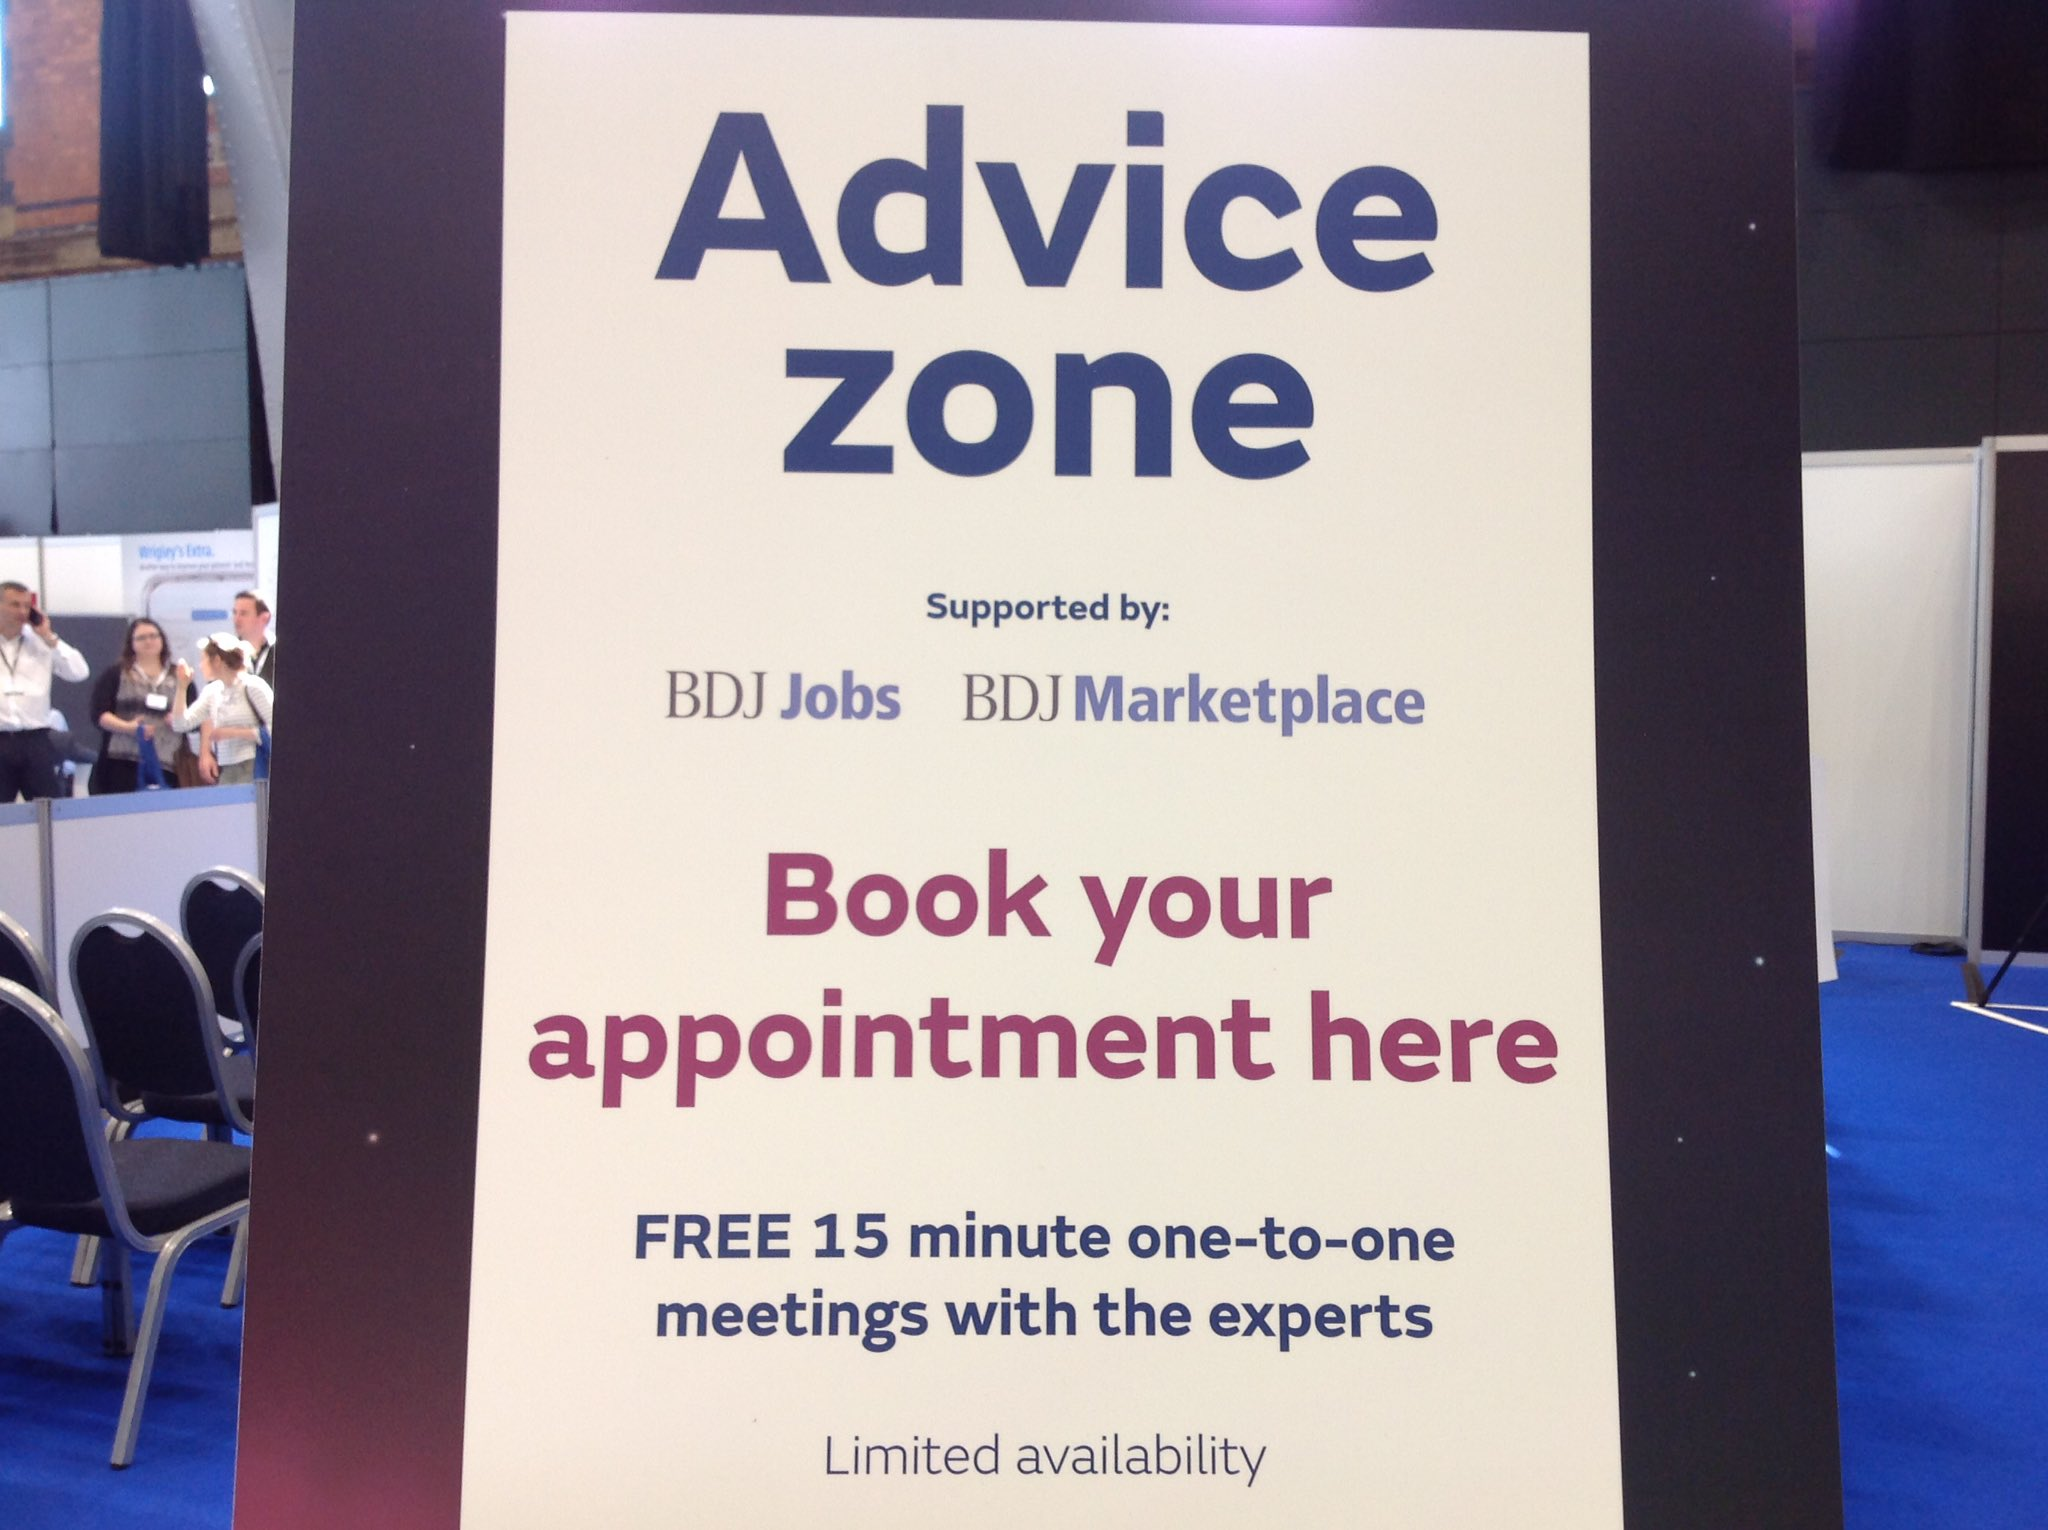 Book a free 15 minute appointment at the advice zone! Hurry - limited slots available #BDA2017 @BDJJobs https://t.co/uriEKRFY5D